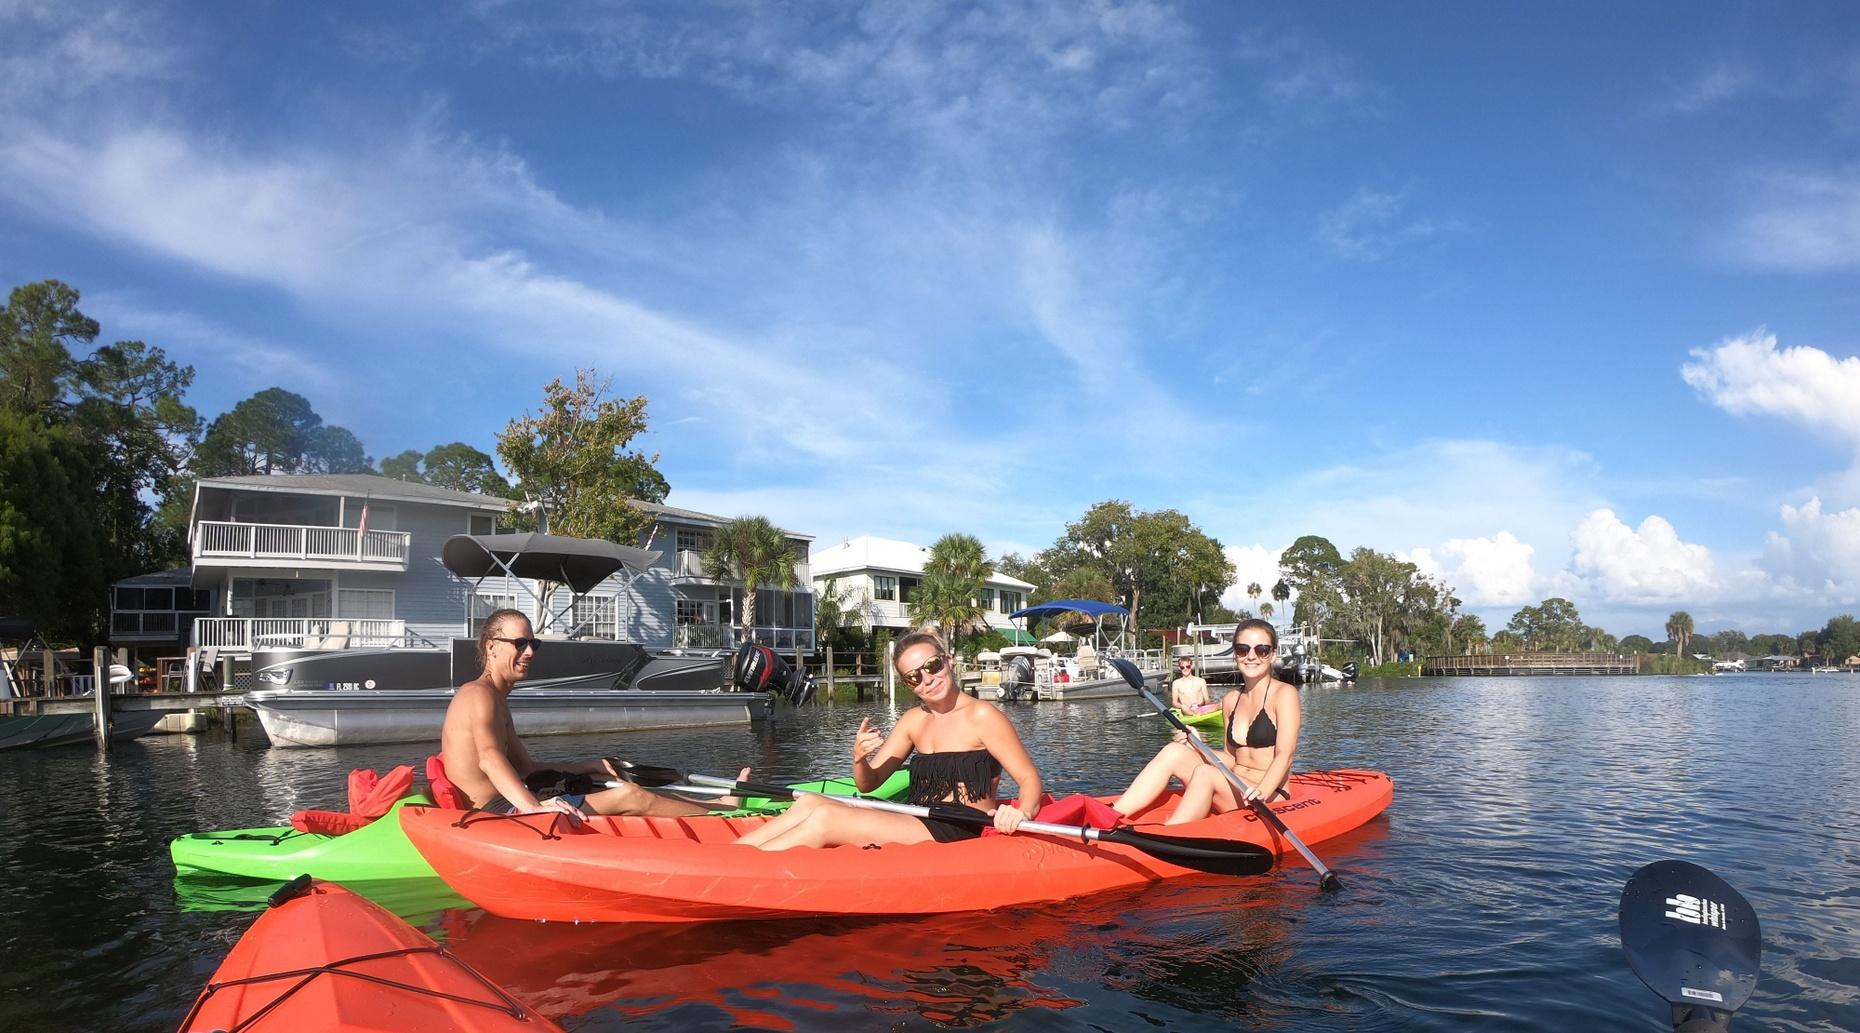 2-Hour Tandem Kayak Rental and Manatee Viewing in Crystal River